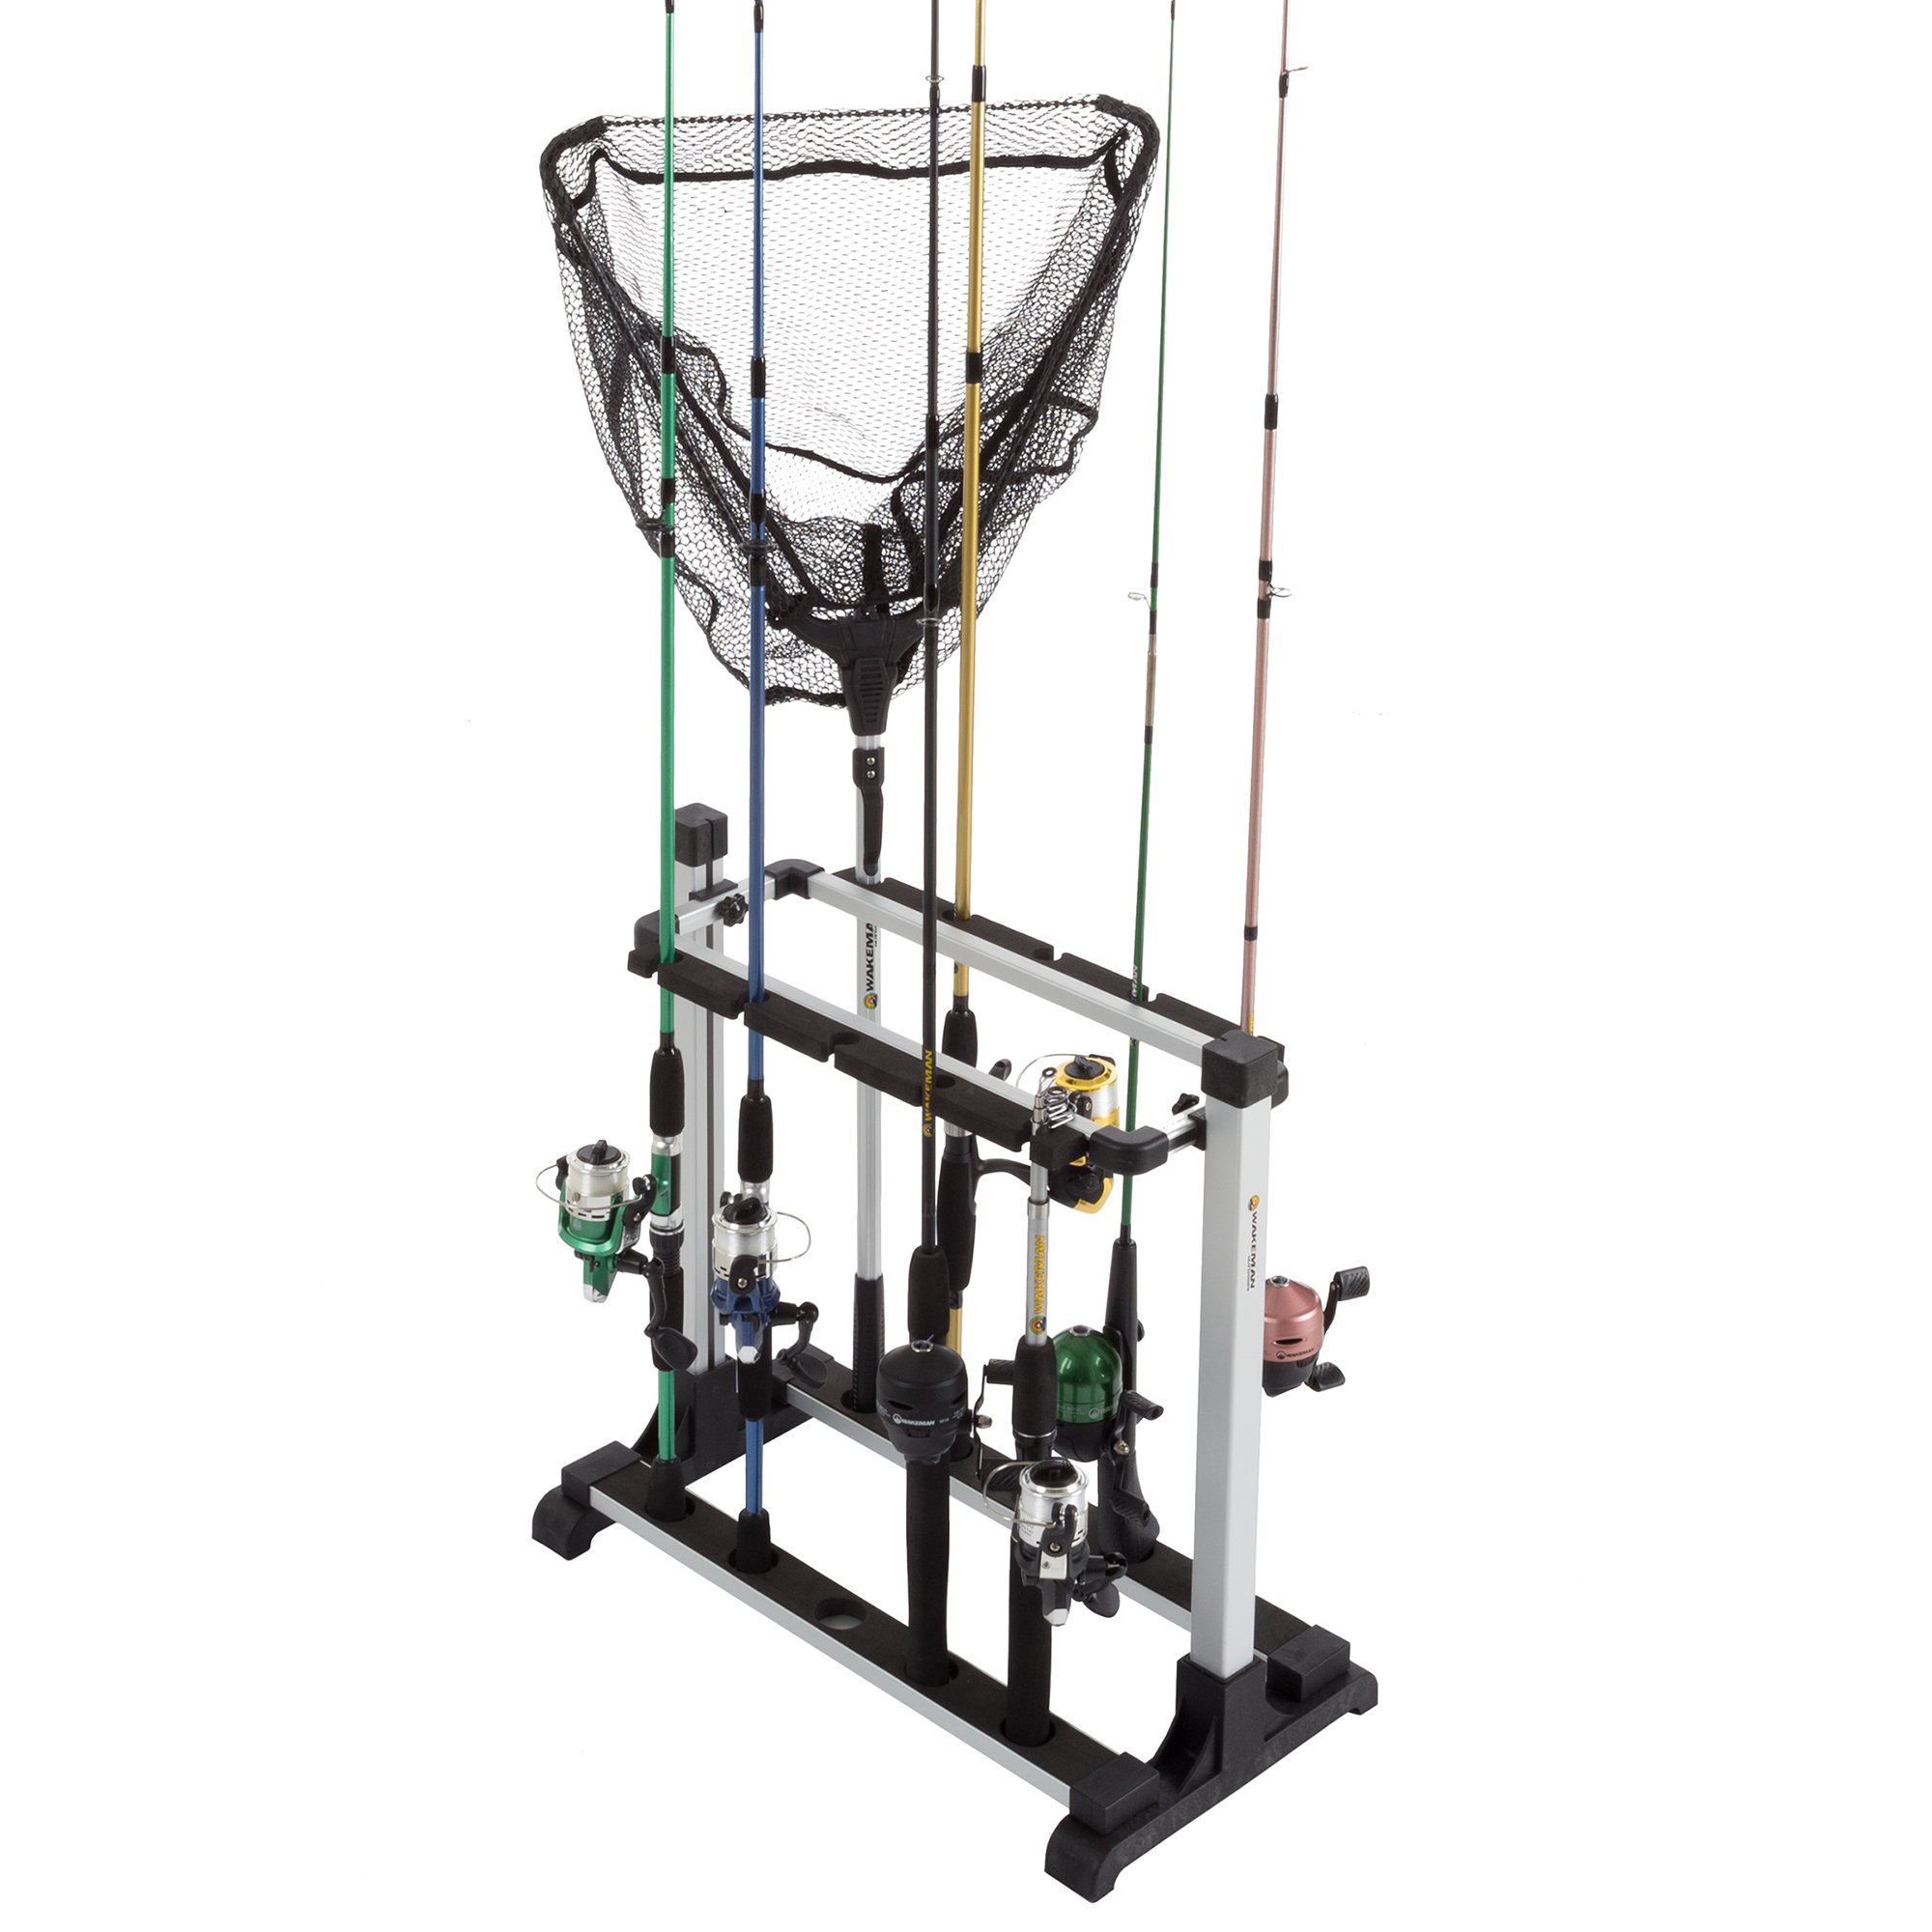 Wakeman Fishing Rod Rack- Aluminum Freestanding Floor Storage, Organizer Stand for Home or Garage, Fits 10 Freshwater or Saltwater Rods Outdoors